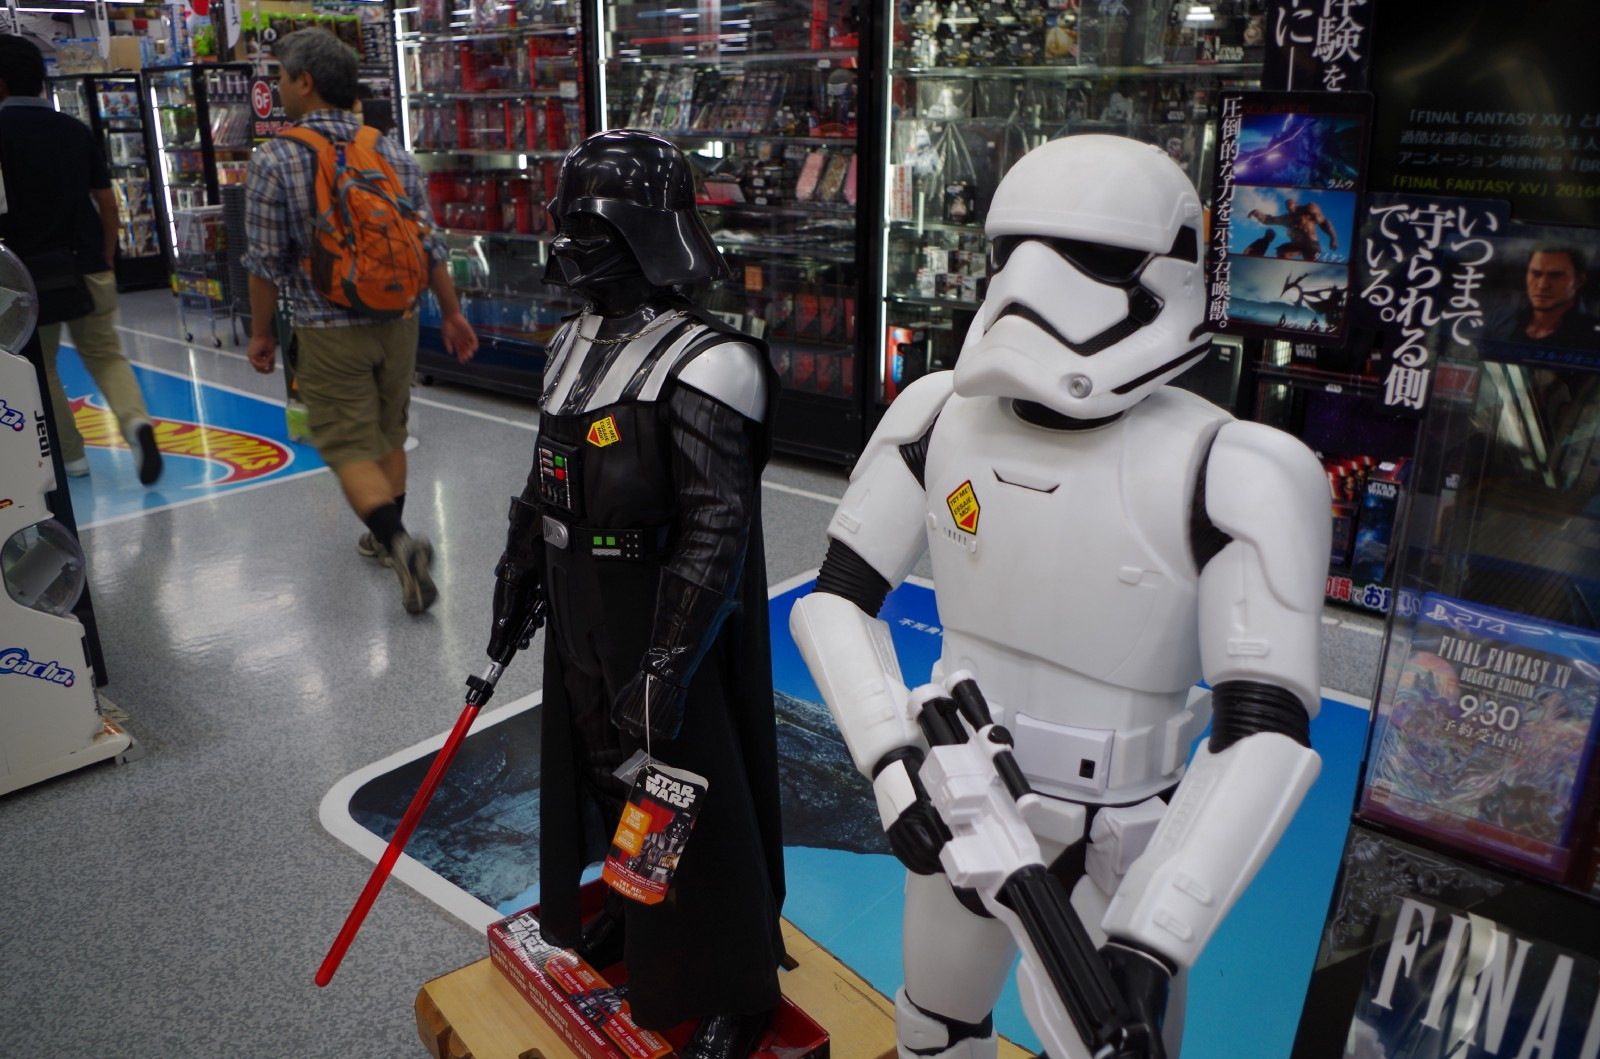 Star Wars Toys at Yodobashi-Akiba